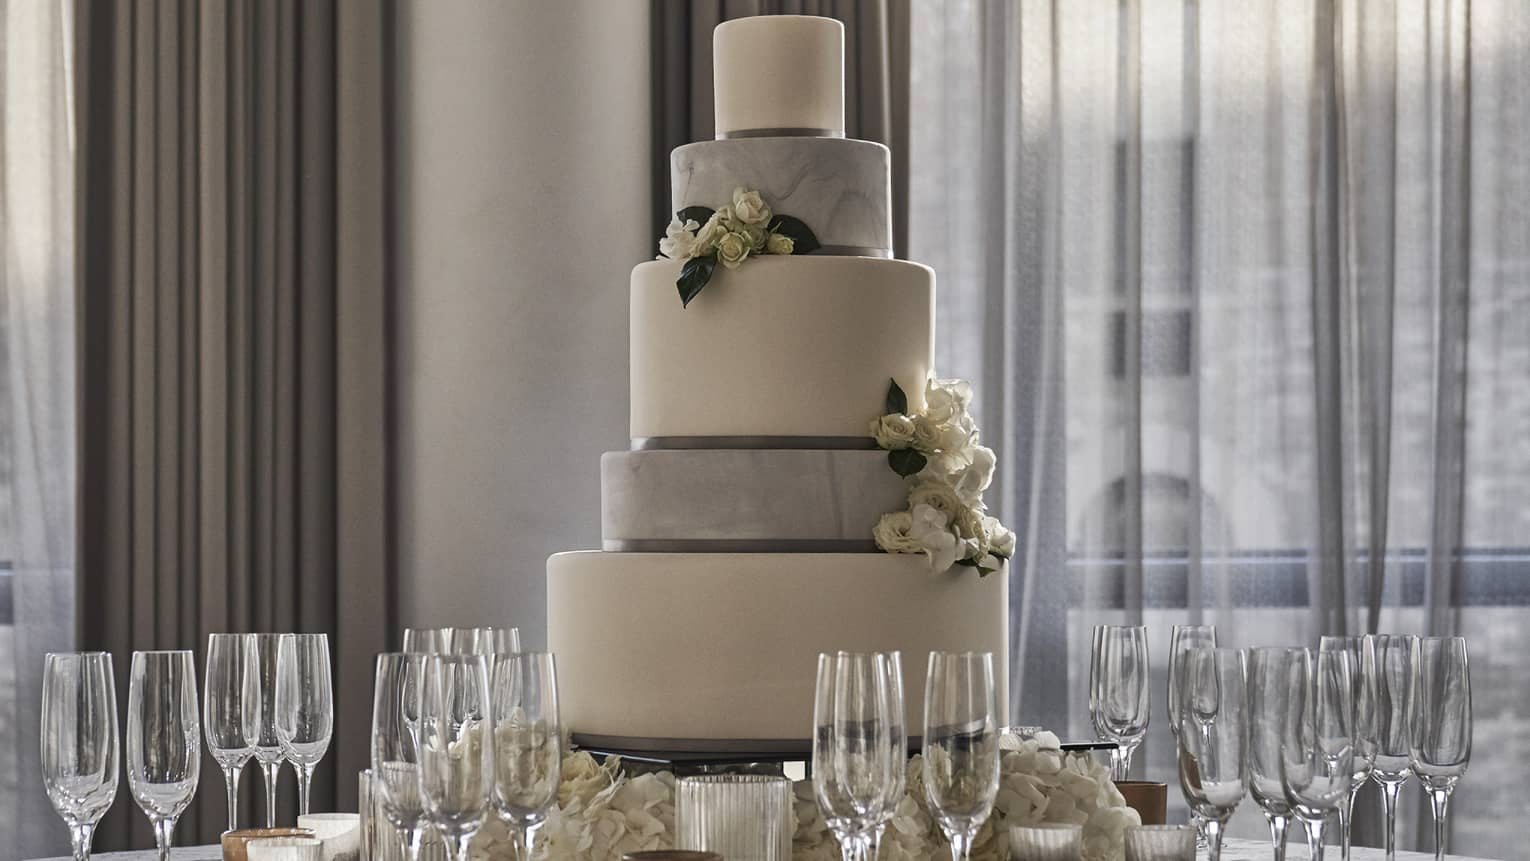 Tiered wedding cake on round banquet table with Champagne glasses